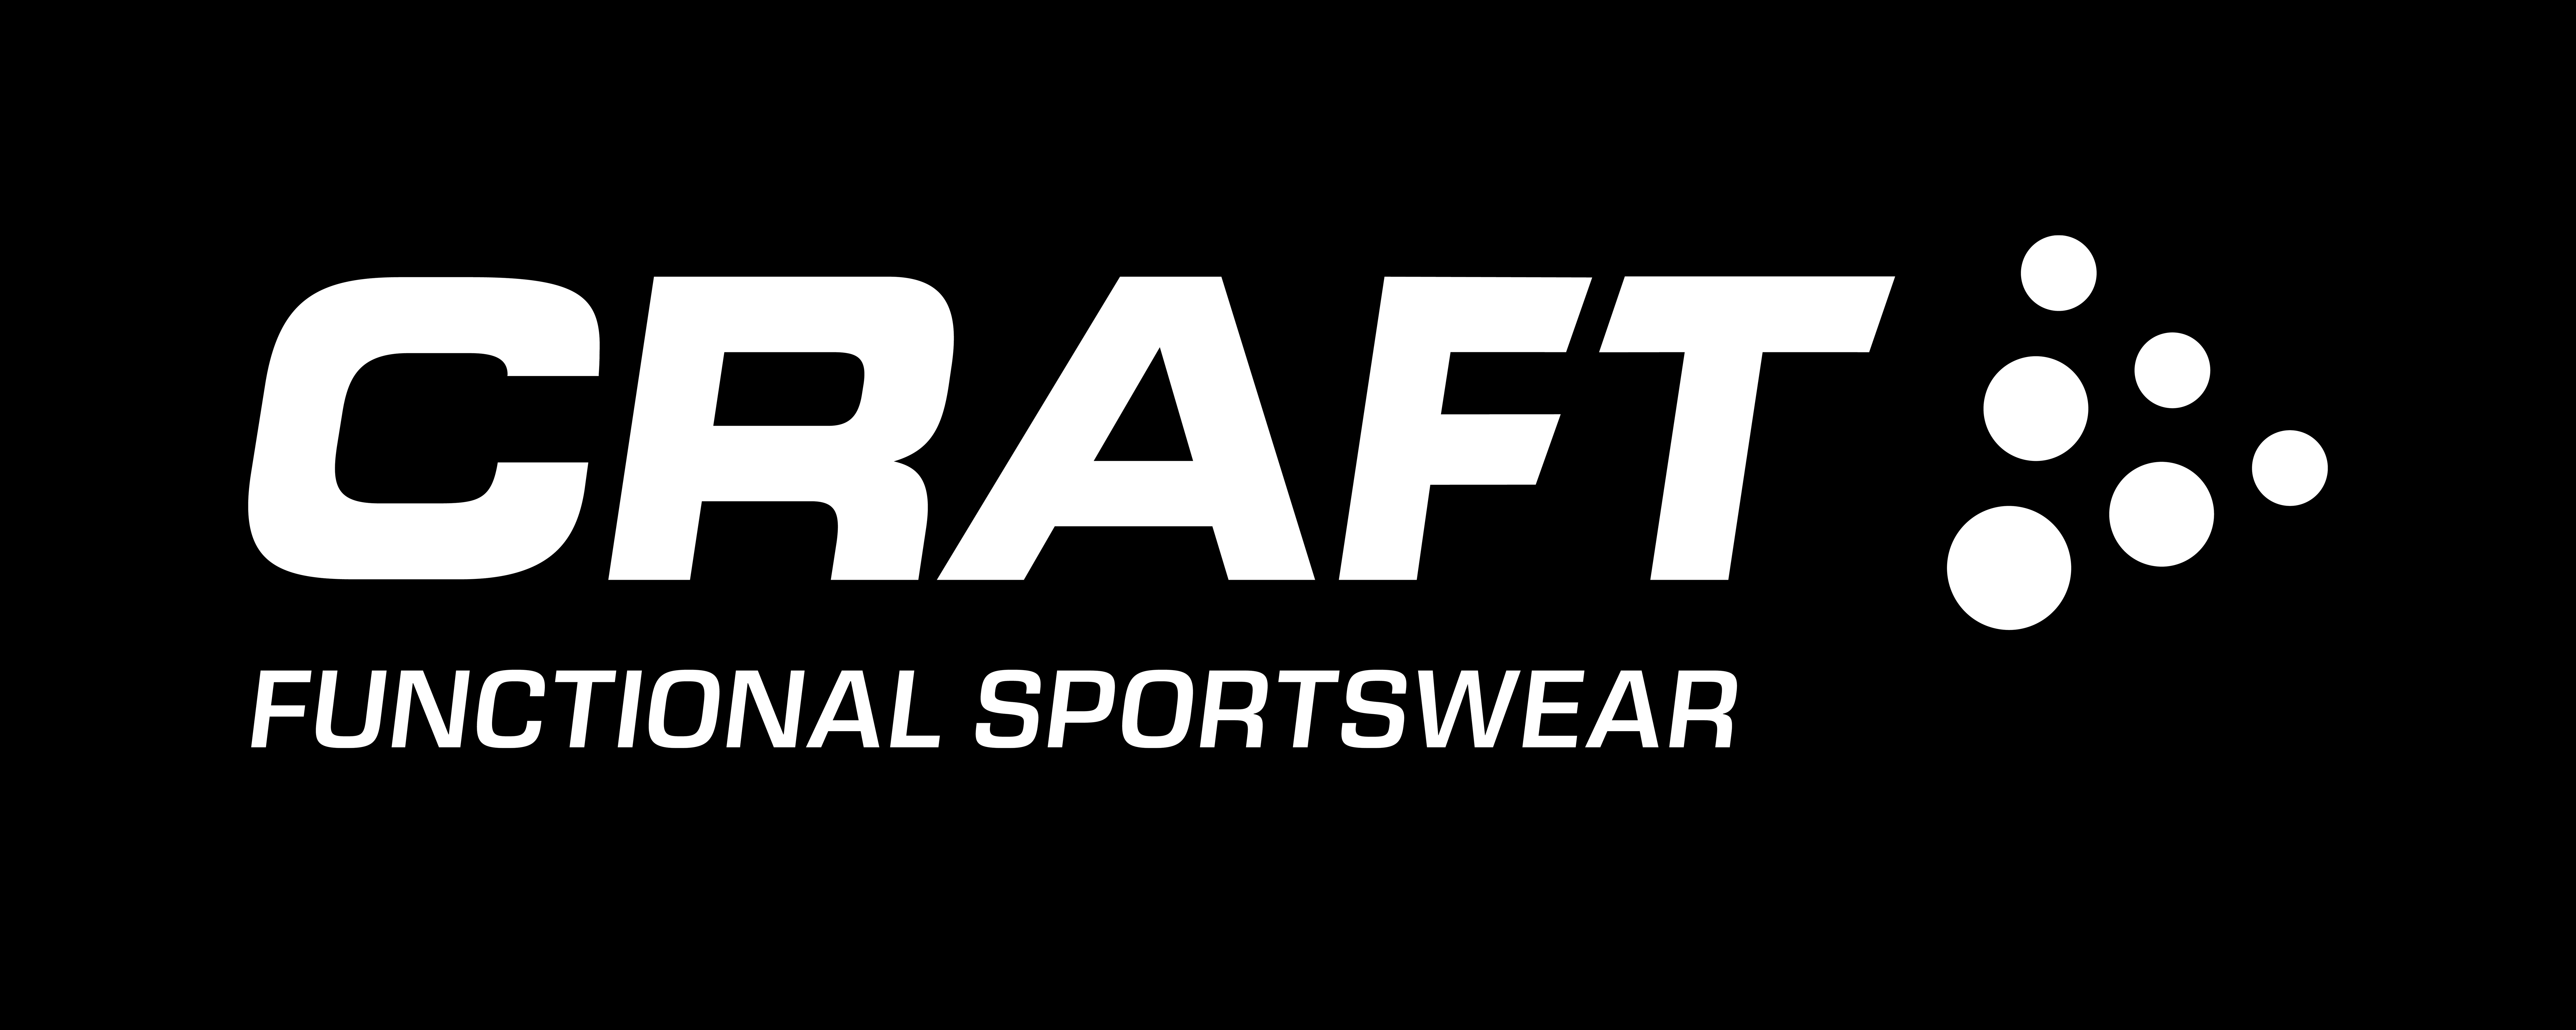 CRAFT logo sw